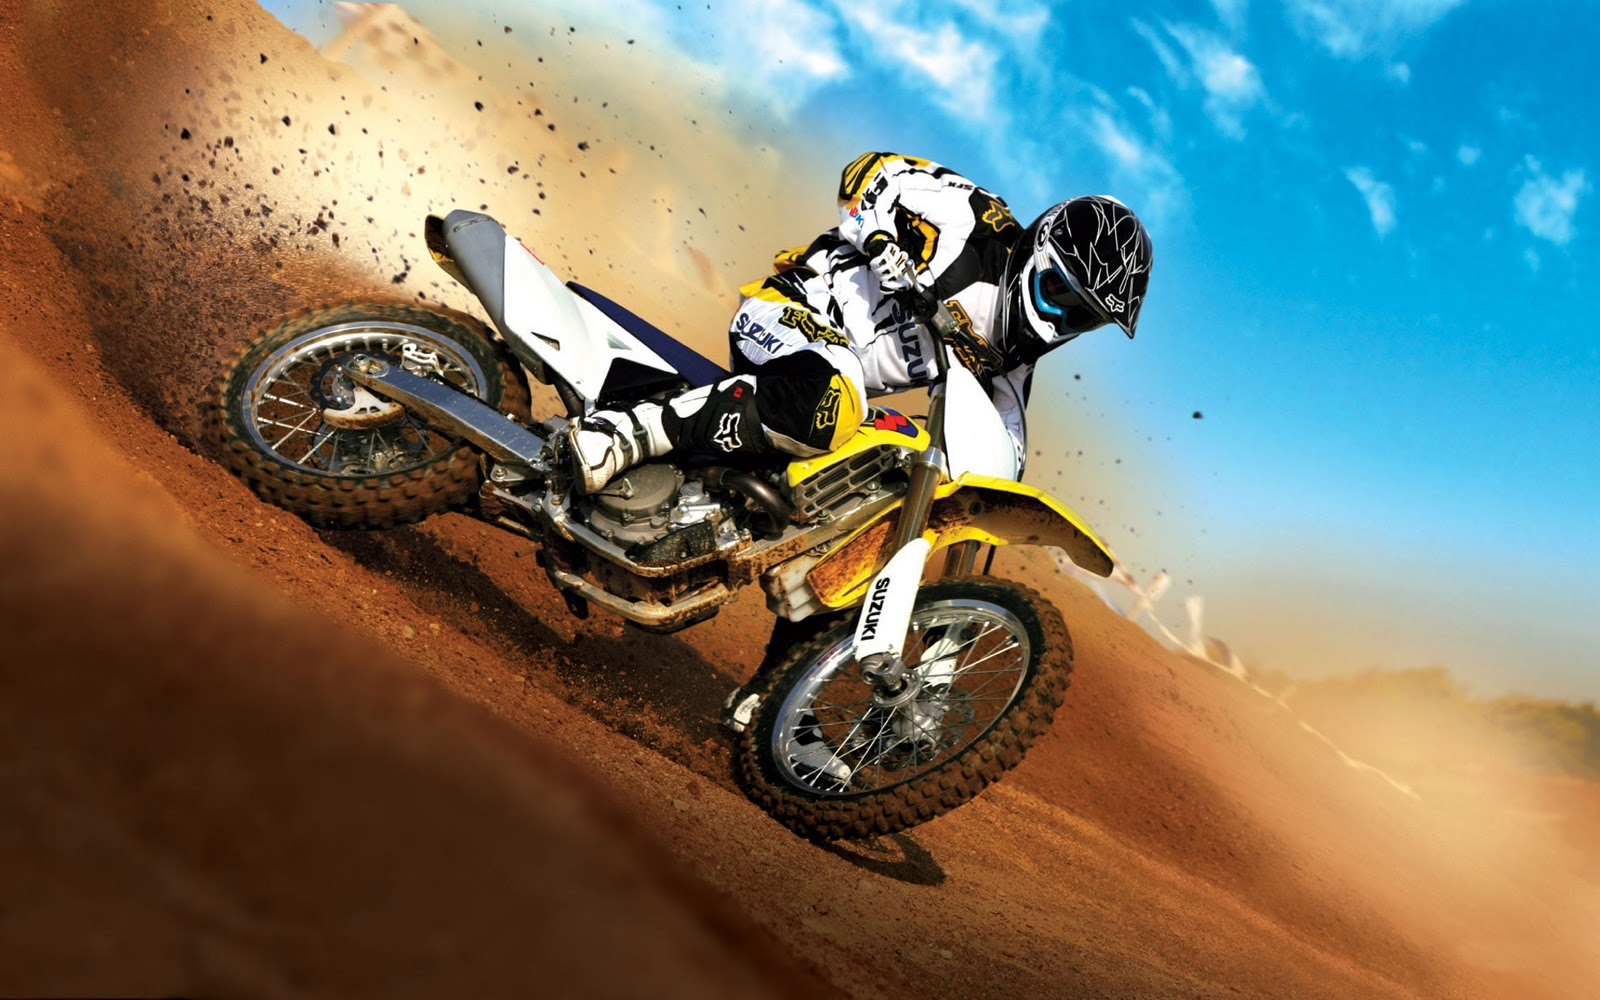 http://3.bp.blogspot.com/-7uTUWvyZPBk/TZIYvVN1qxI/AAAAAAAAAAg/91L8c_q79A4/s1600/bike-stunts-hd-wallpapers-widescreen.jpg